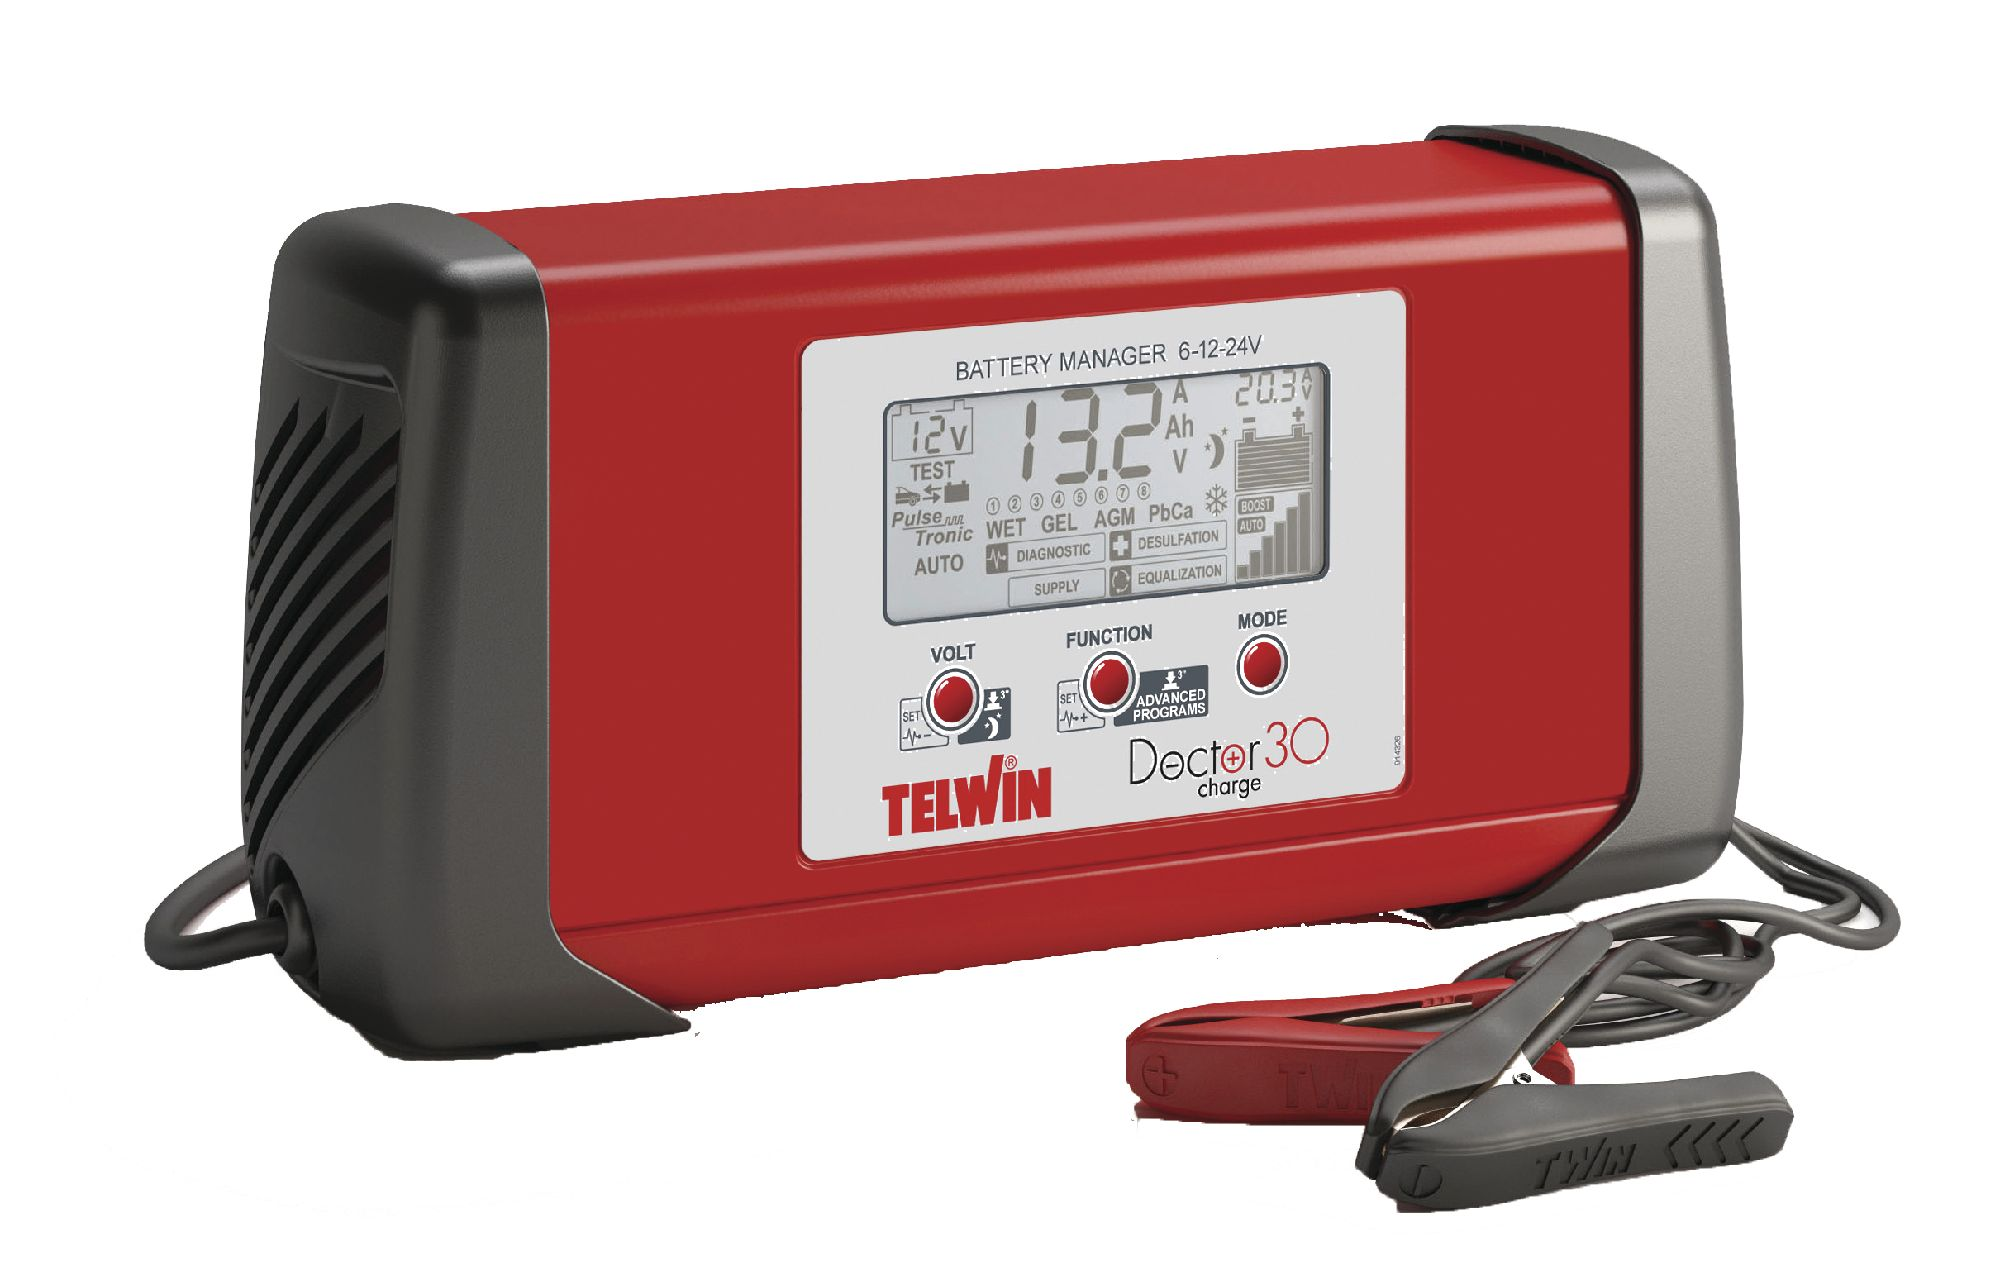 Madhus Garage Equipment - Telwin Doctor Charger